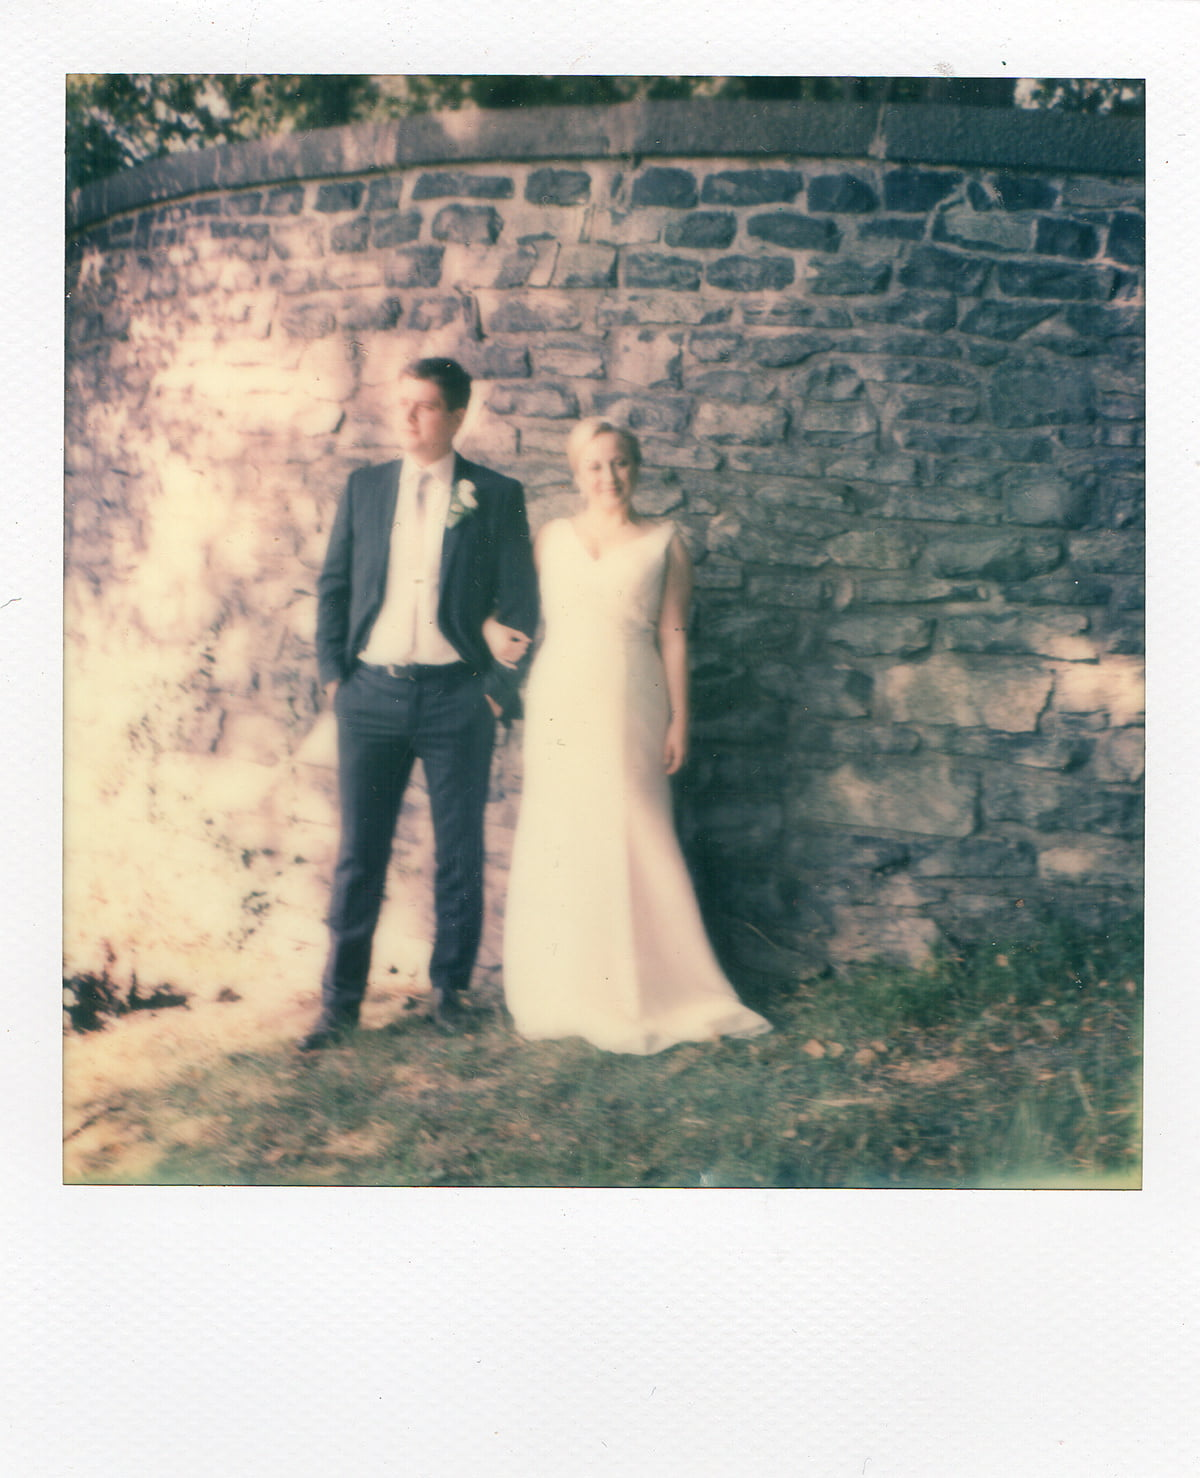 Impossible-Project-Polaroid-Film-Artistic-Quirky-Wedding-Photography-007